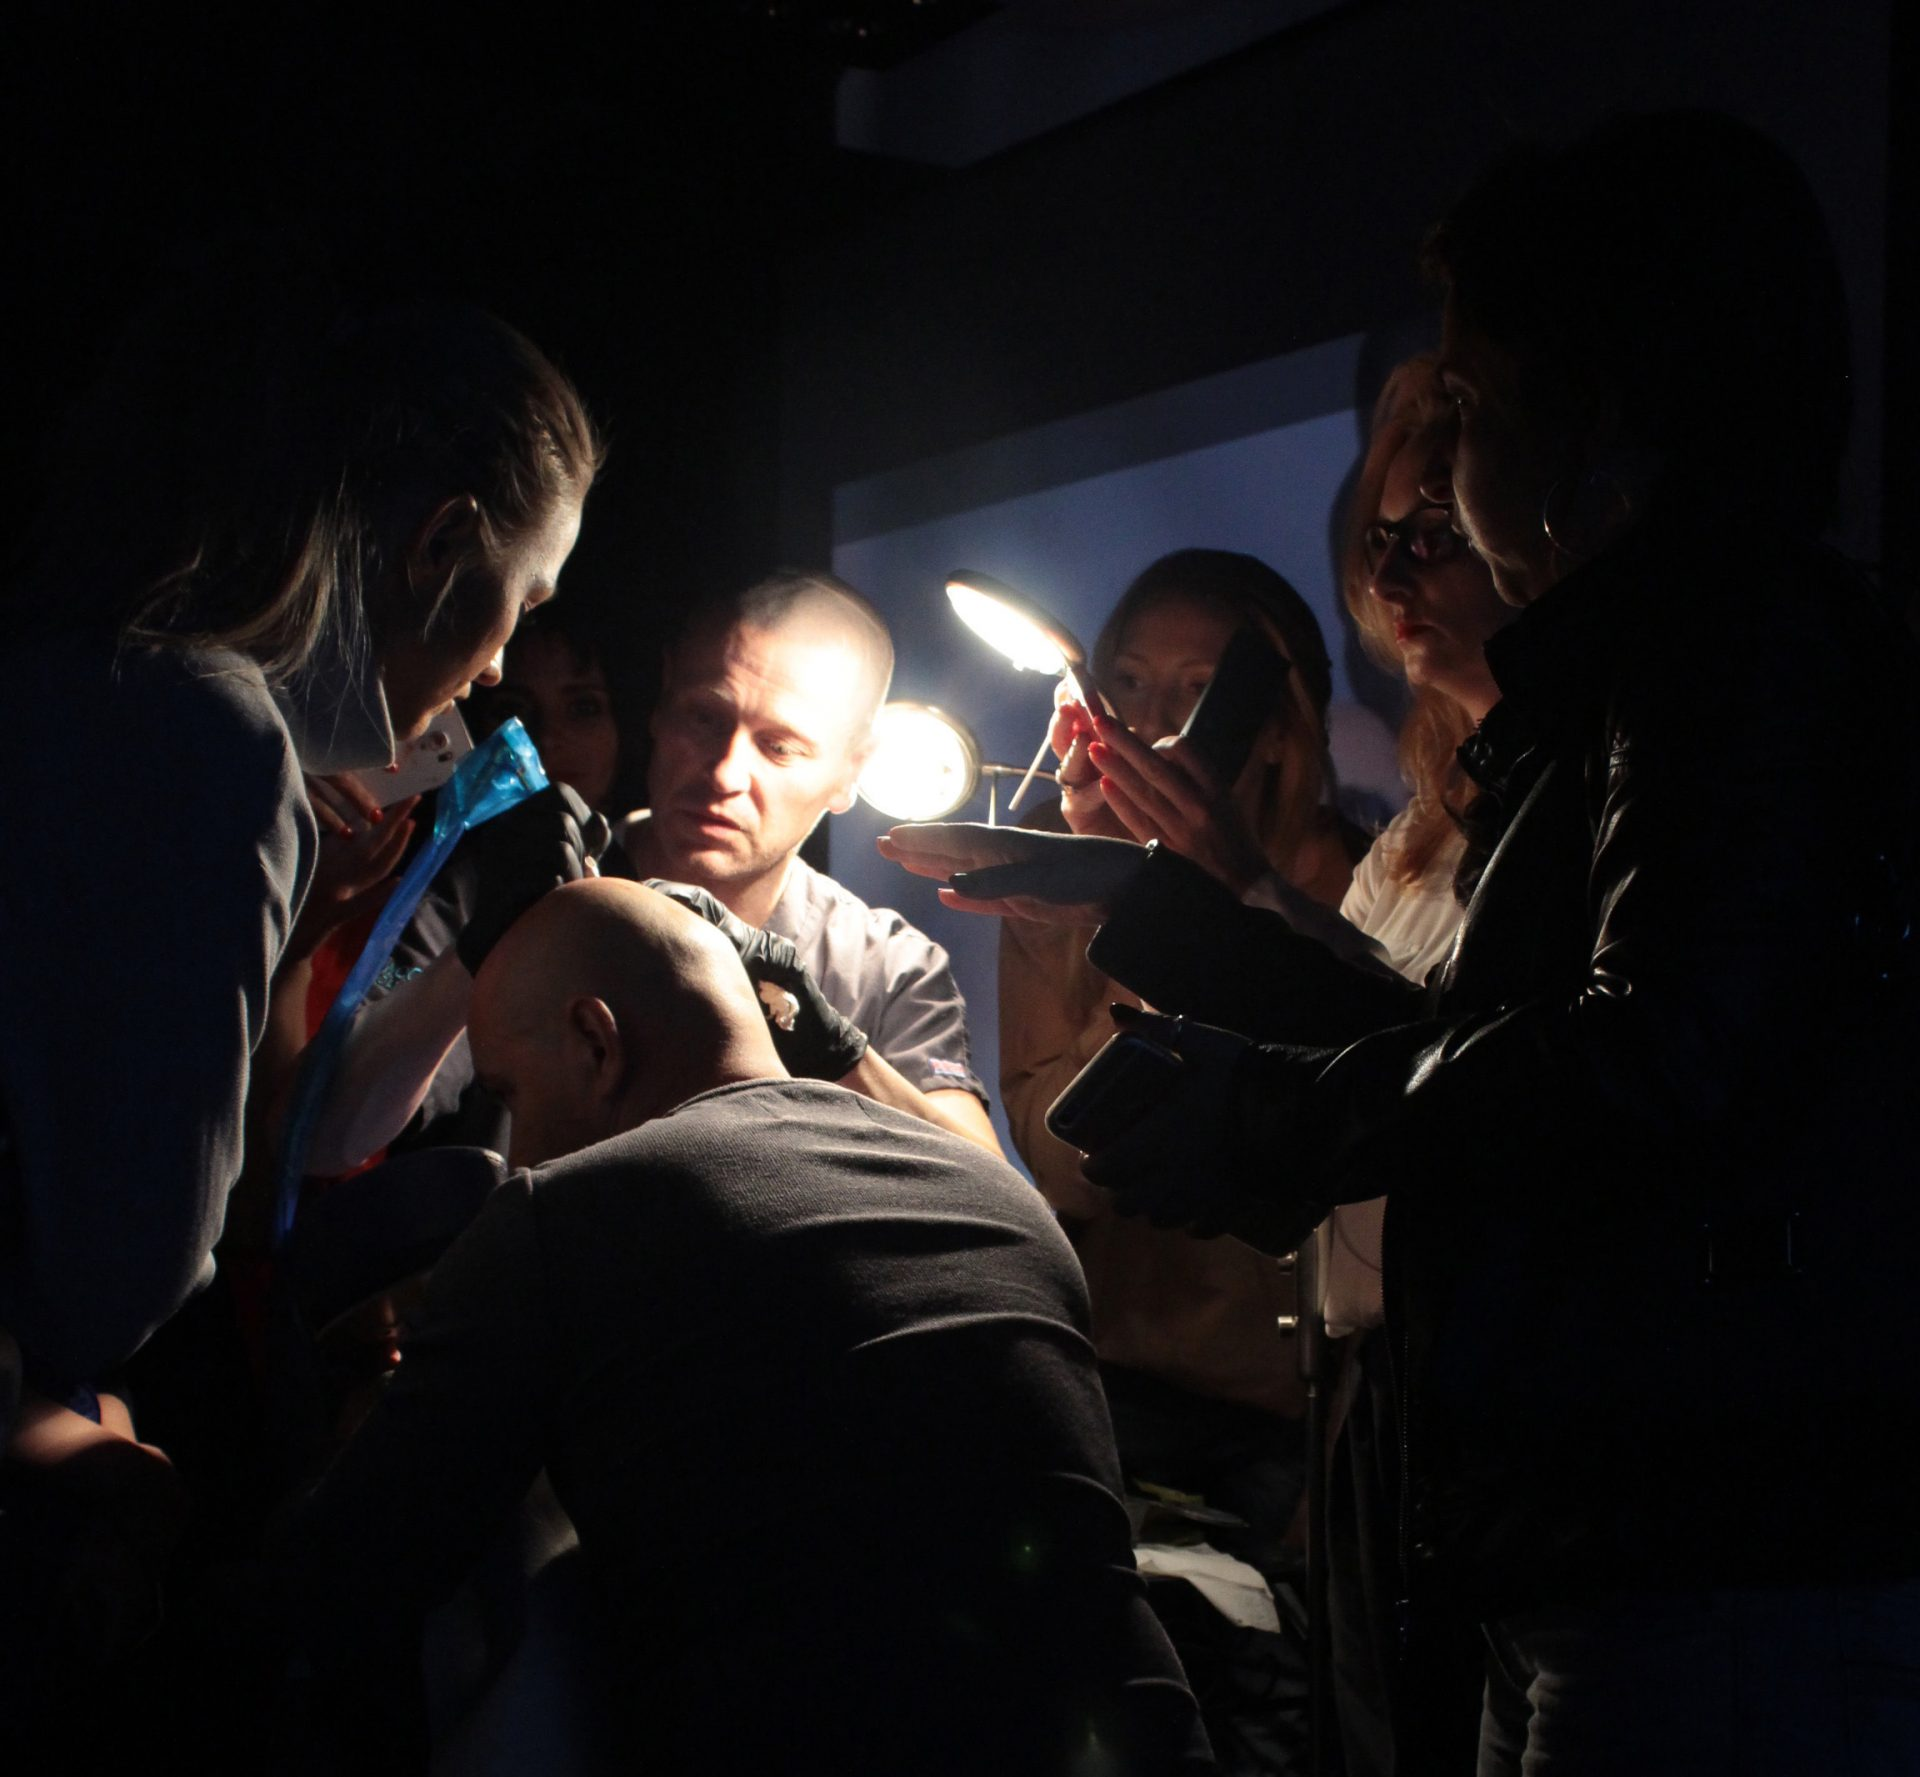 Simon Lane demonstrating scalp micropigmentation in Poland